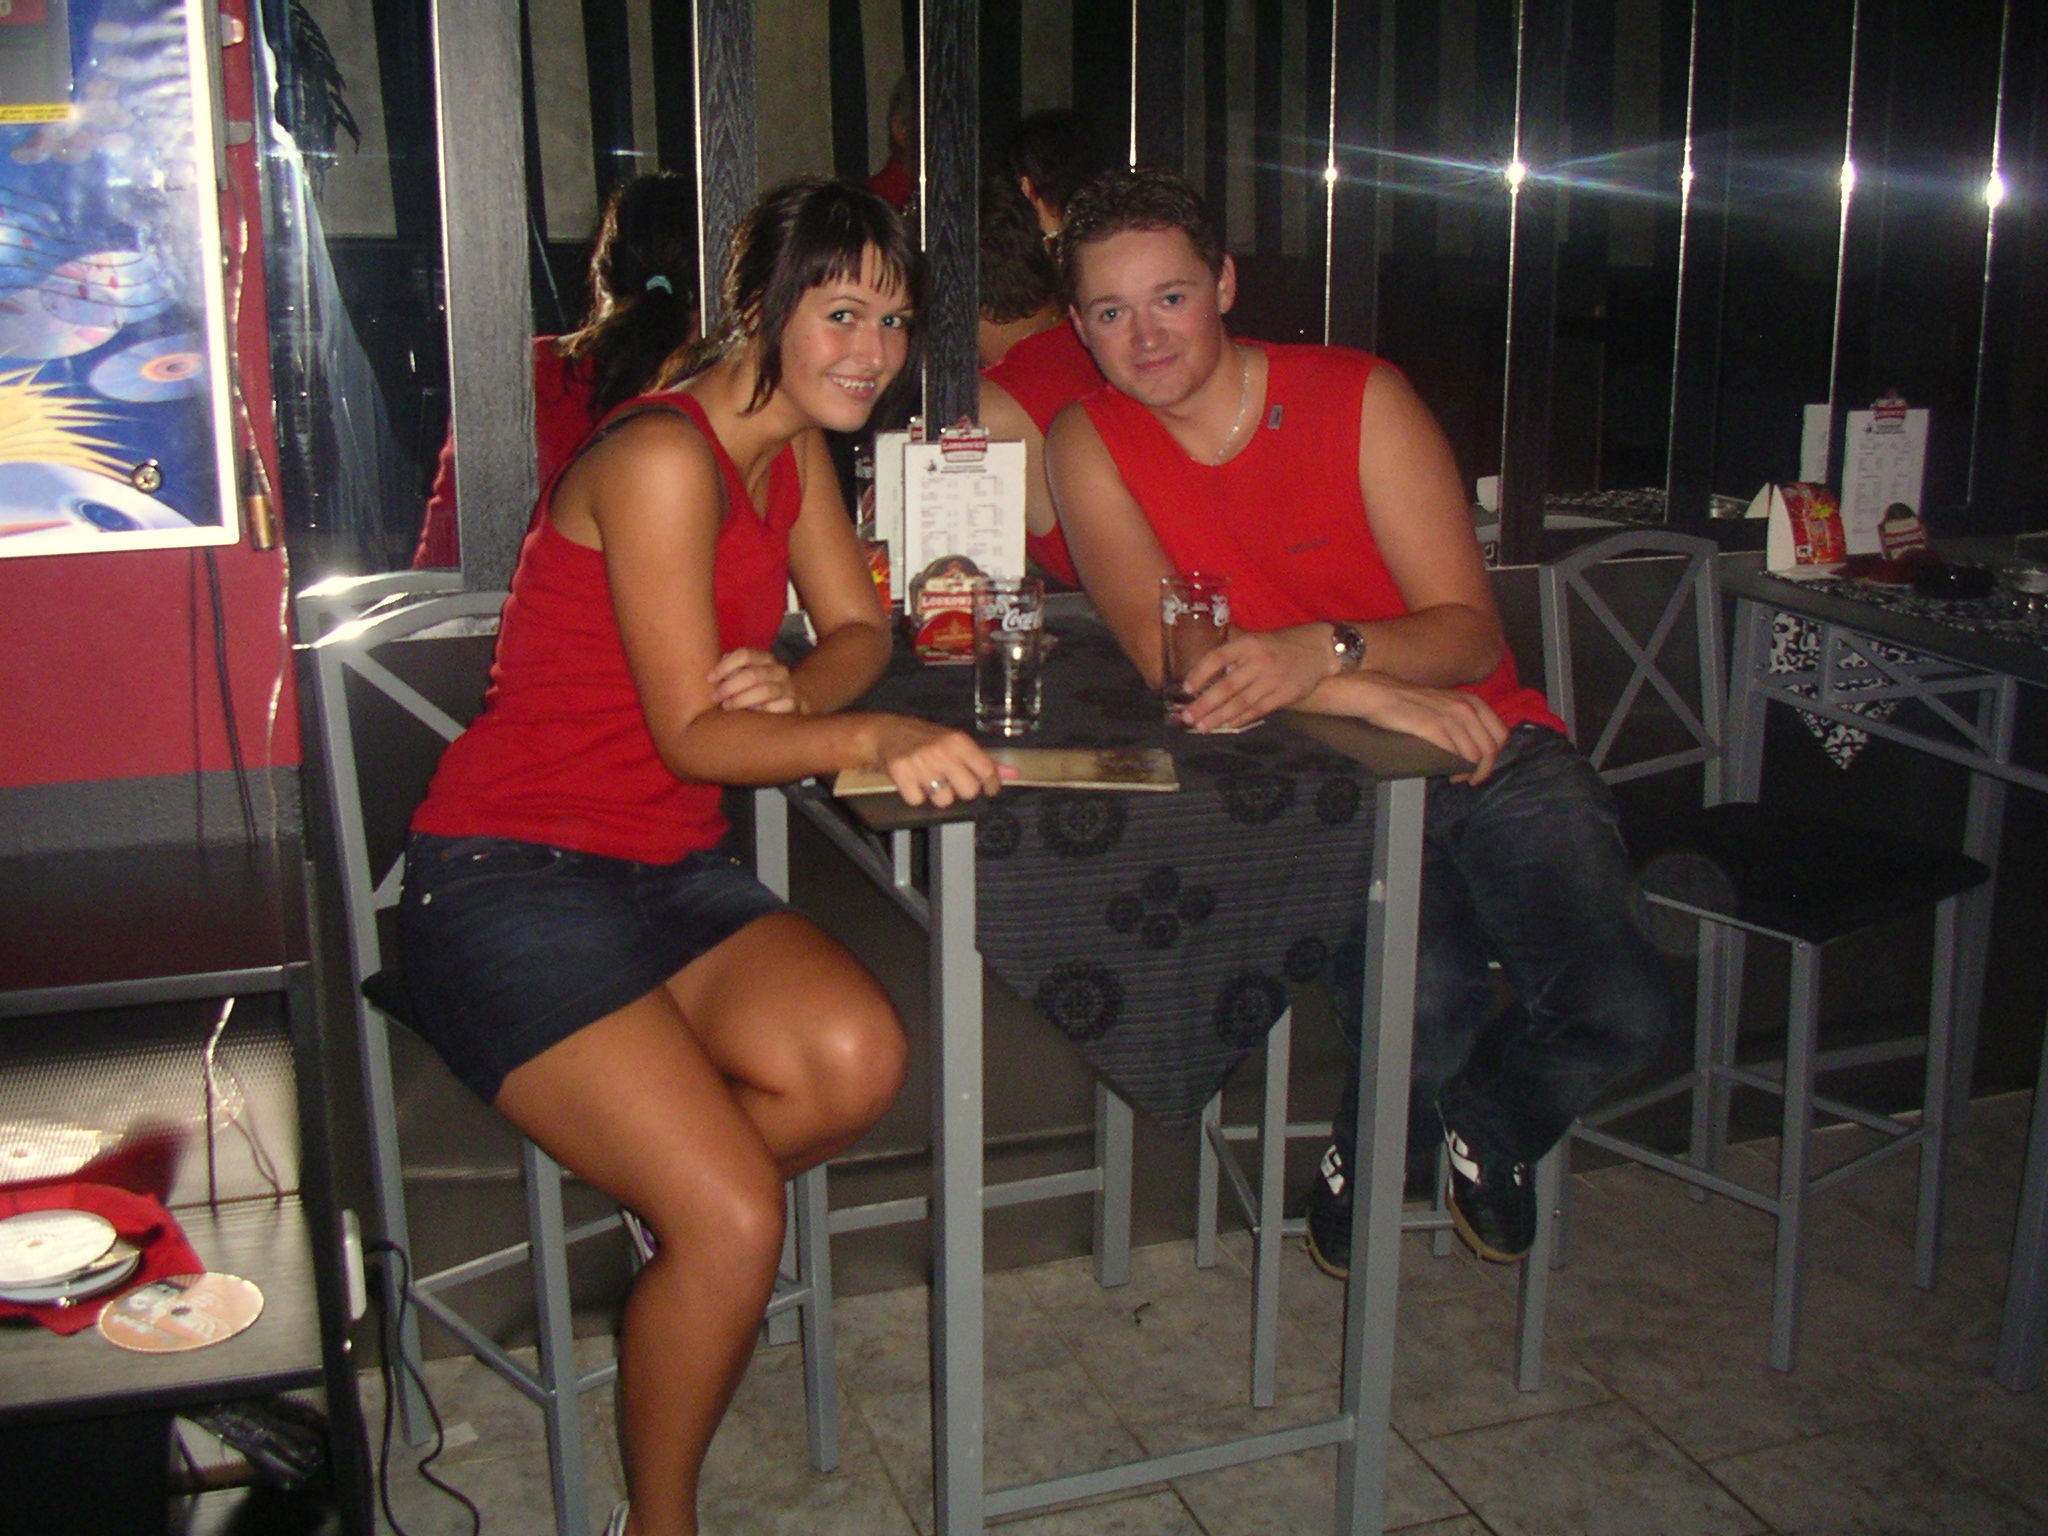 party_v_barvach_14_20111111_1766714669